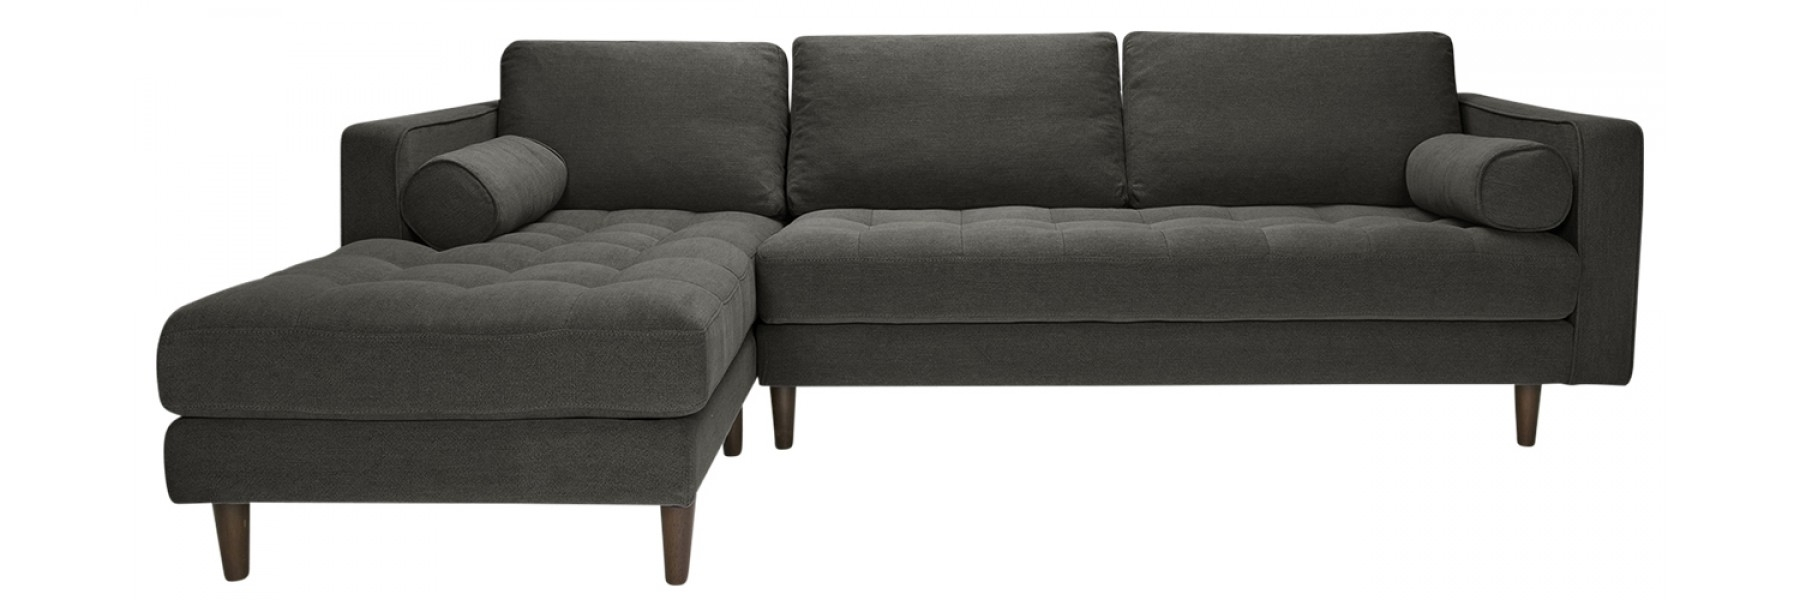 Sawyer Laf Sectional Stoned Slate With Nico Grey Sectionals With Left Facing Storage Chaise (Image 20 of 25)